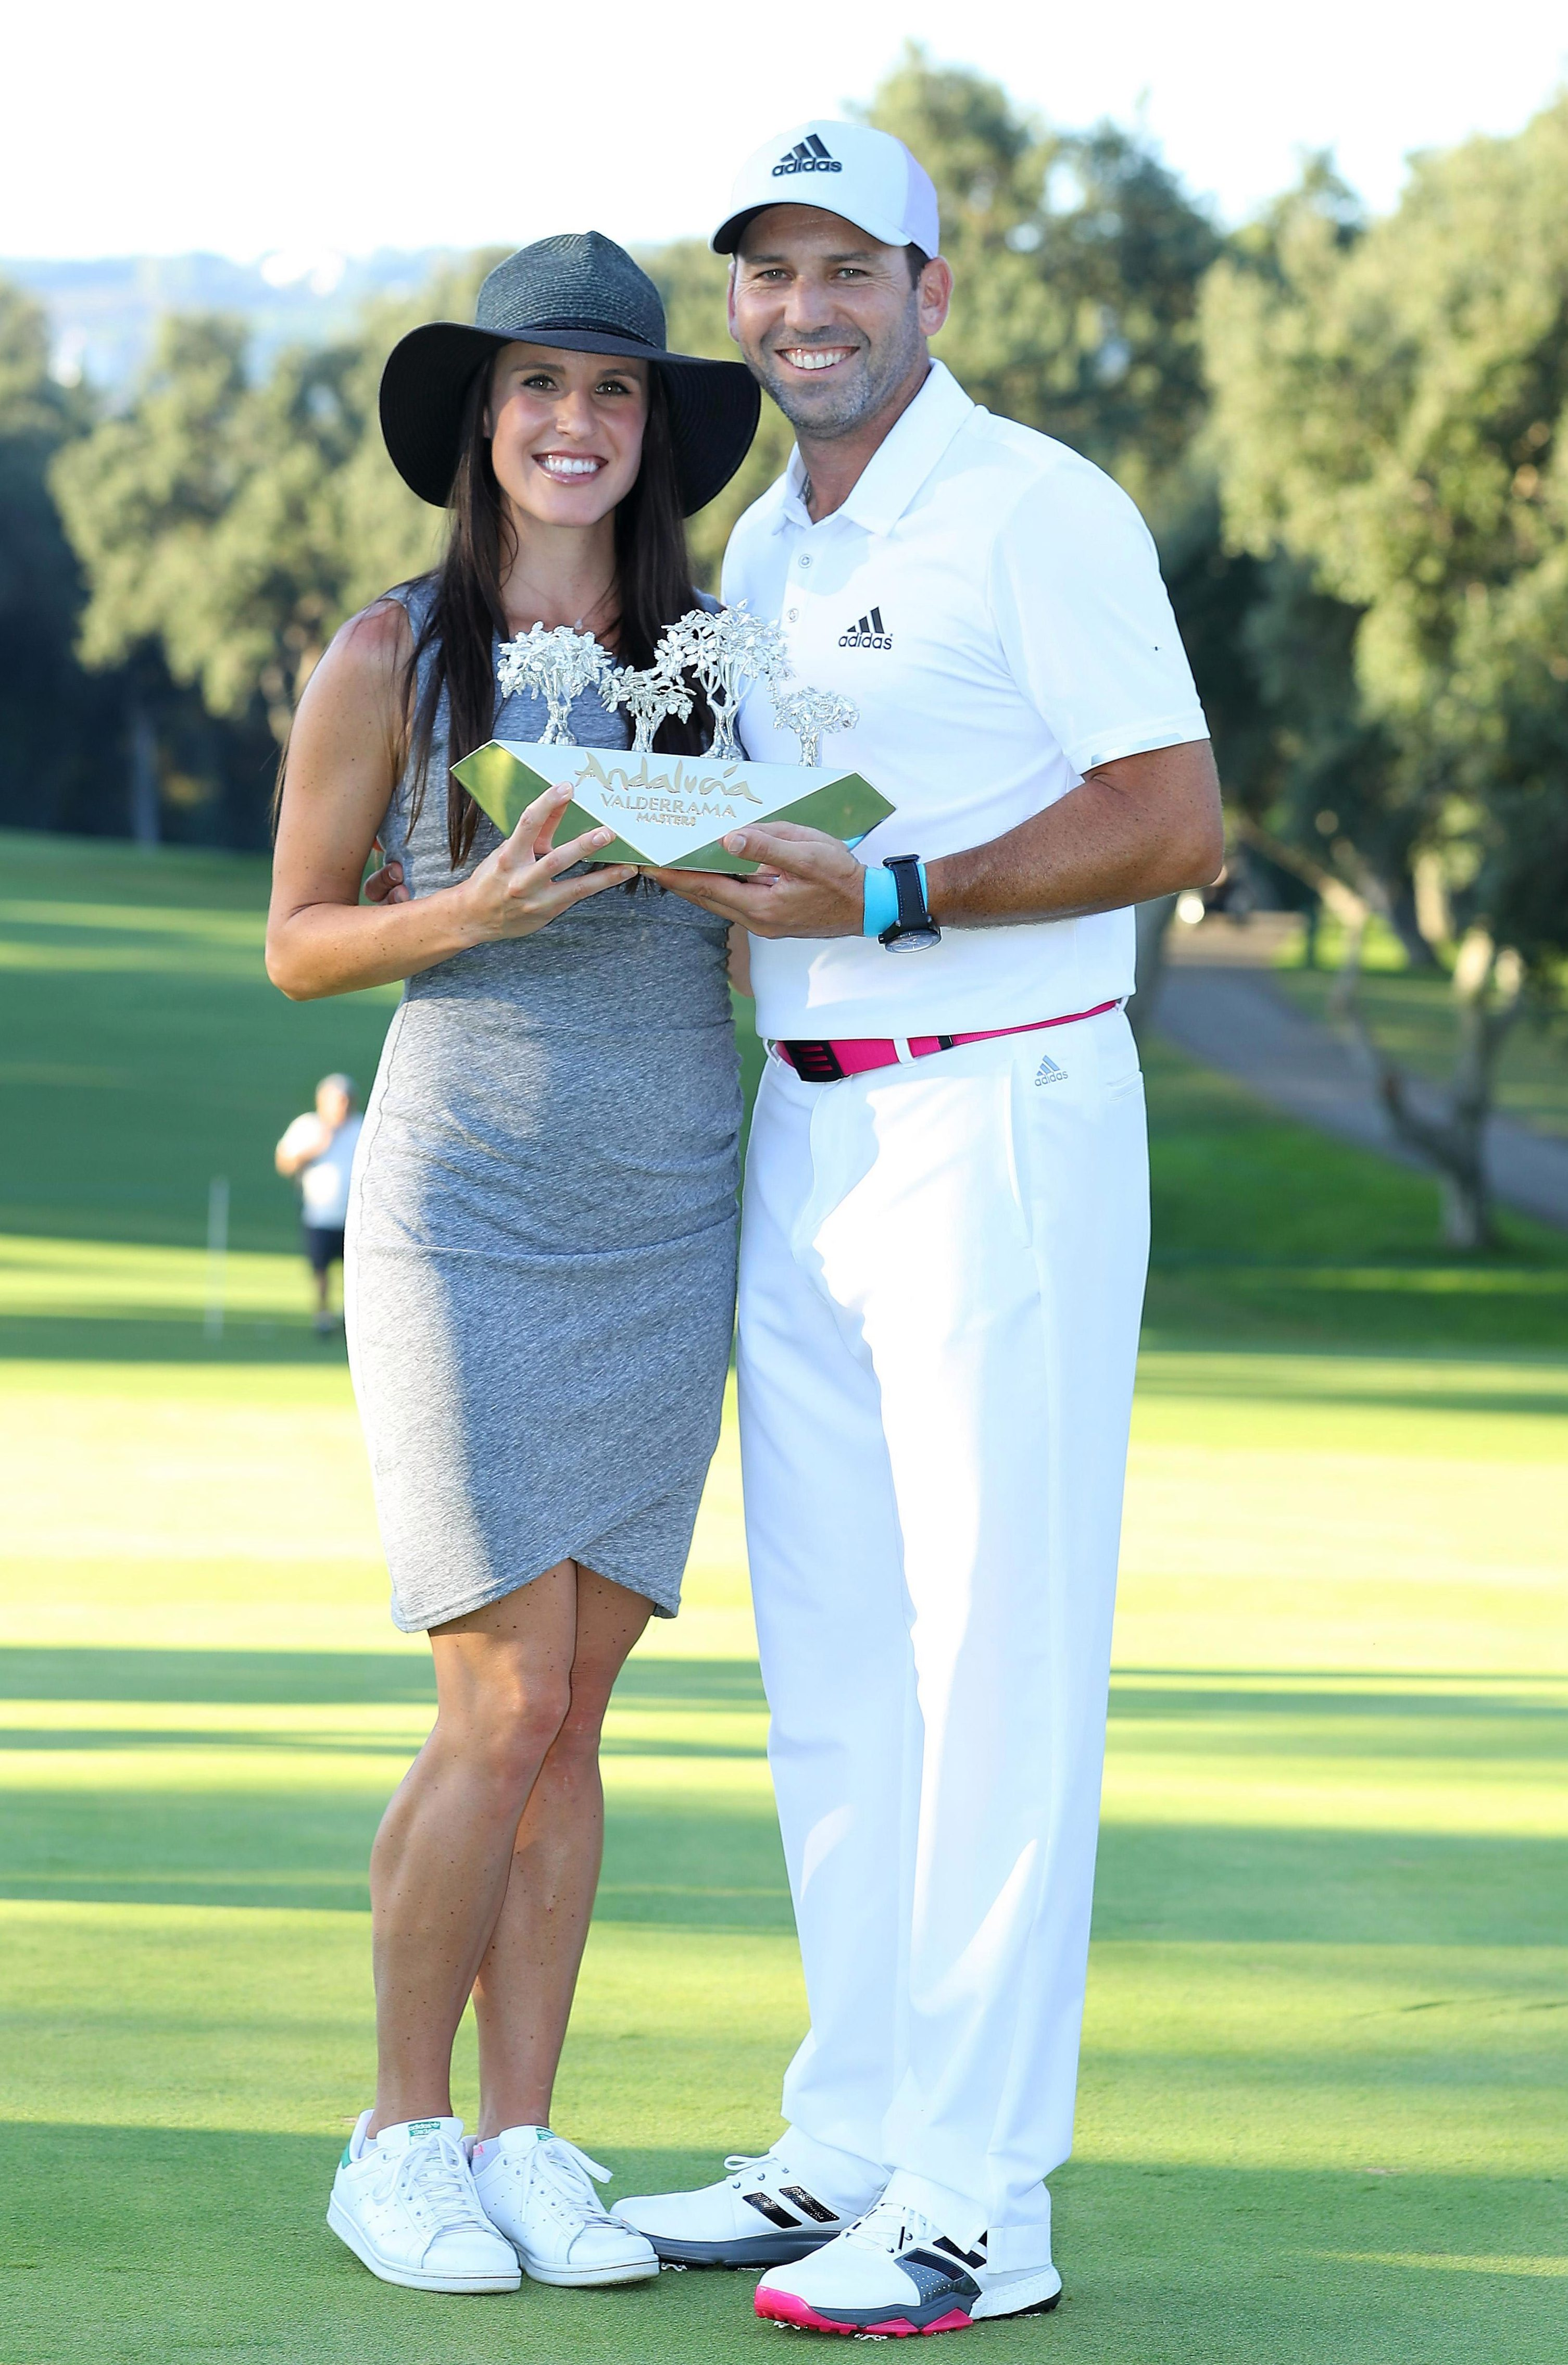 Sergio and Angela Garcia celebrate winning an event in Spain last year